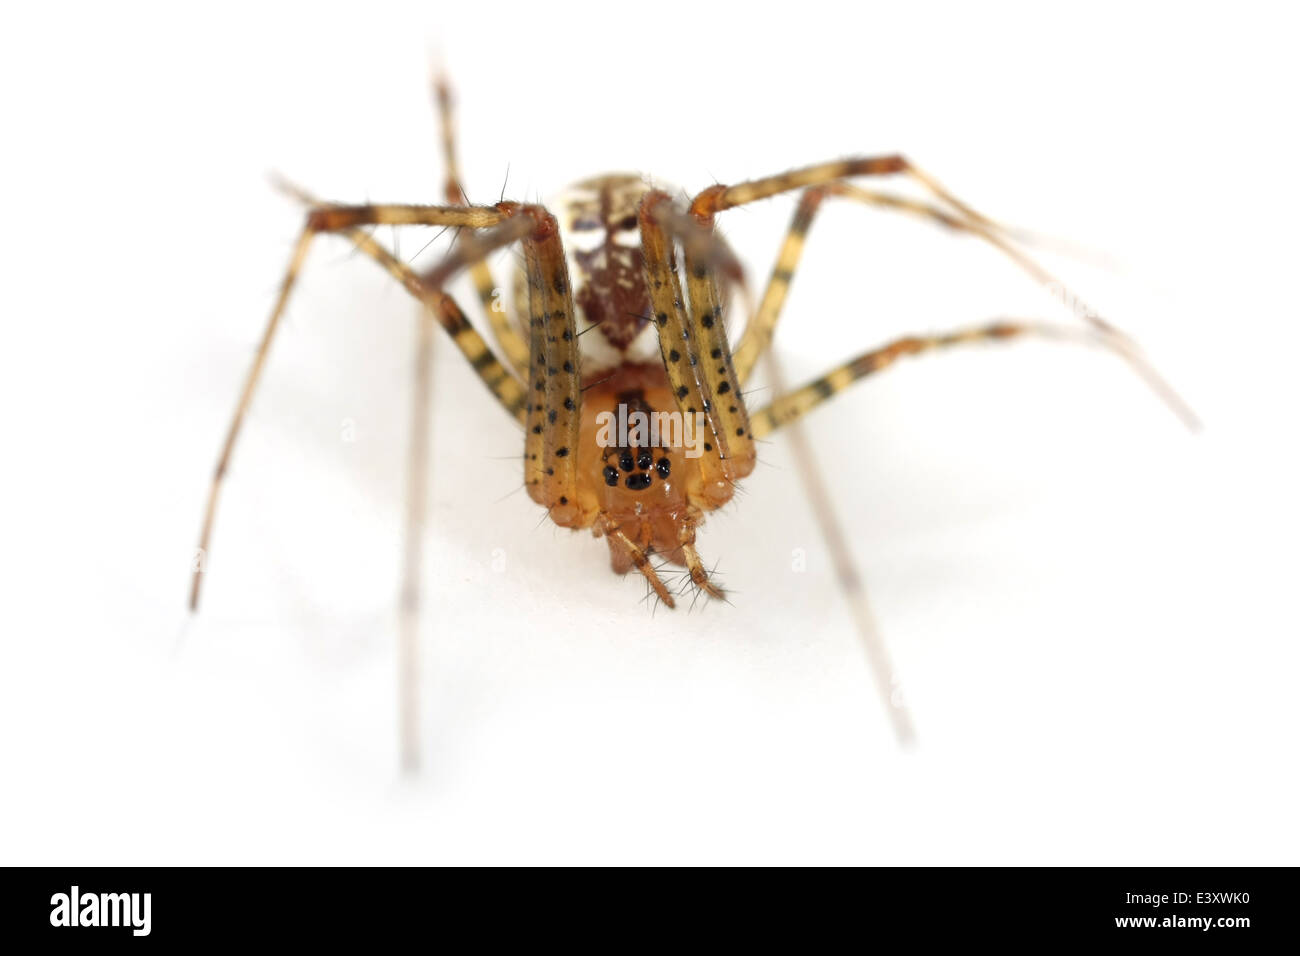 Female Pine-tree embroiderer (Pityohyphantes phrygianus) spider, part of the family Linyphiidae - Sheetweb weavers. Stock Photo